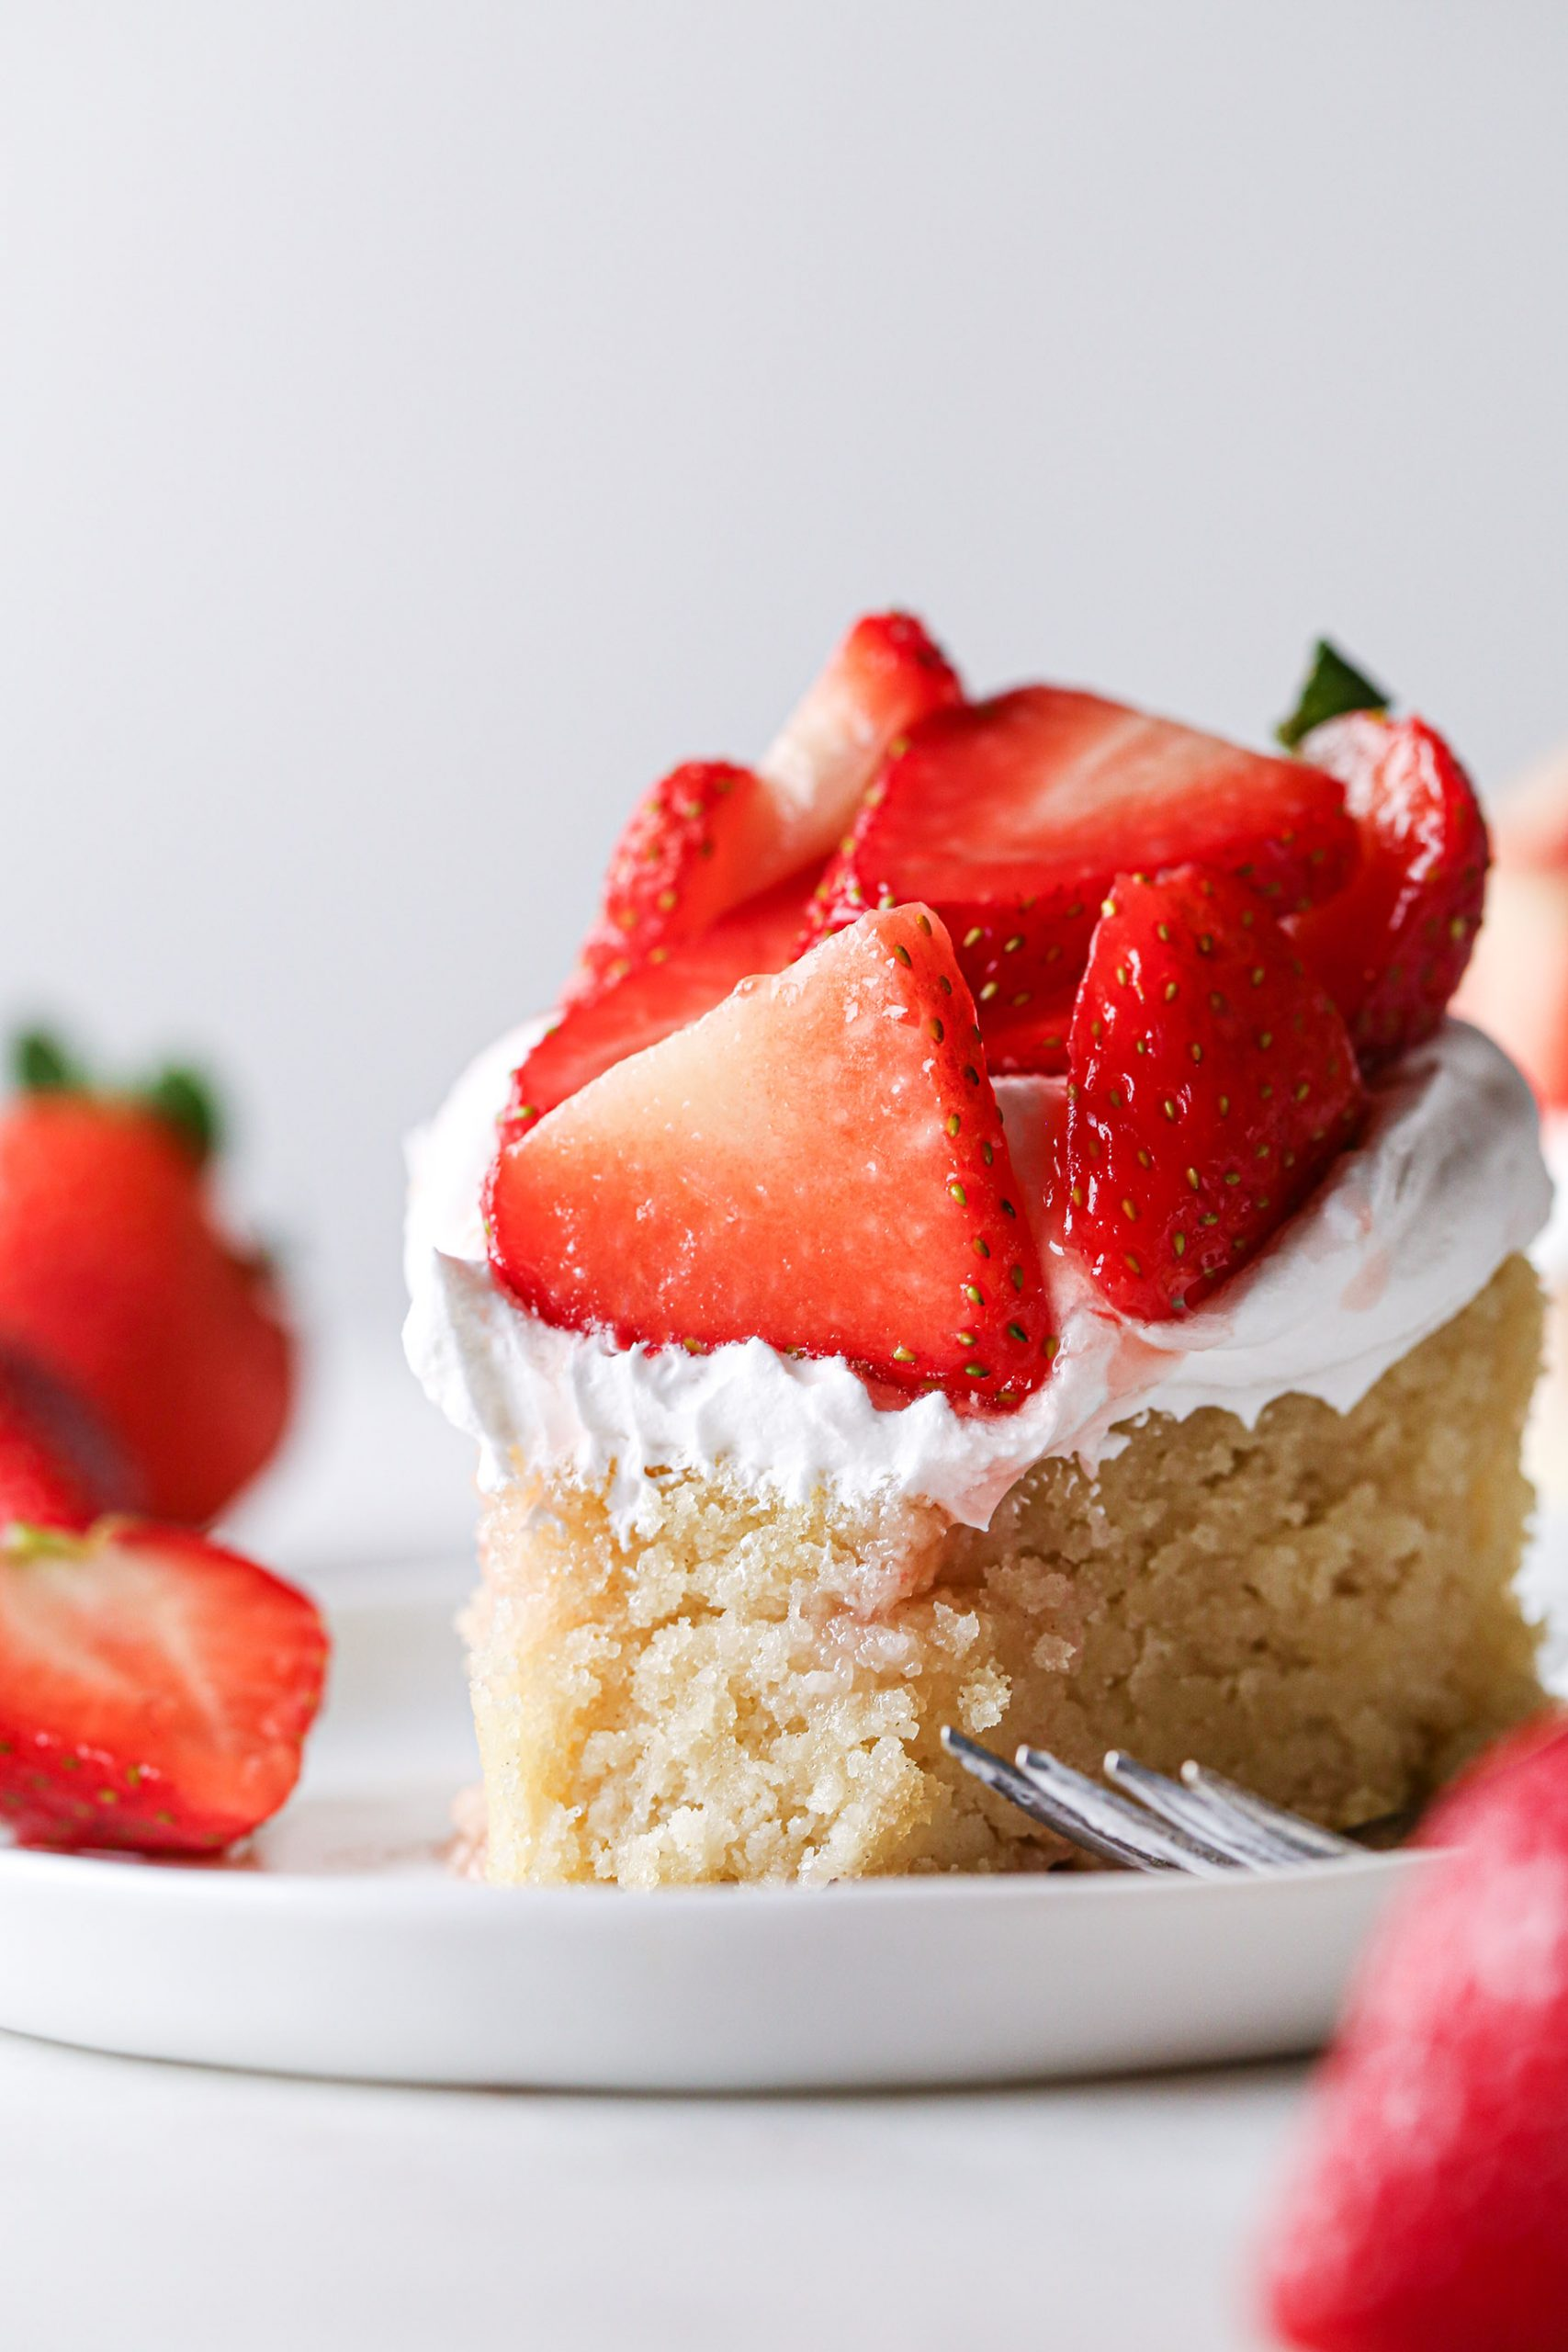 Simple Strawberry Shortcake Cake | Vegan friendly with gluten free option.